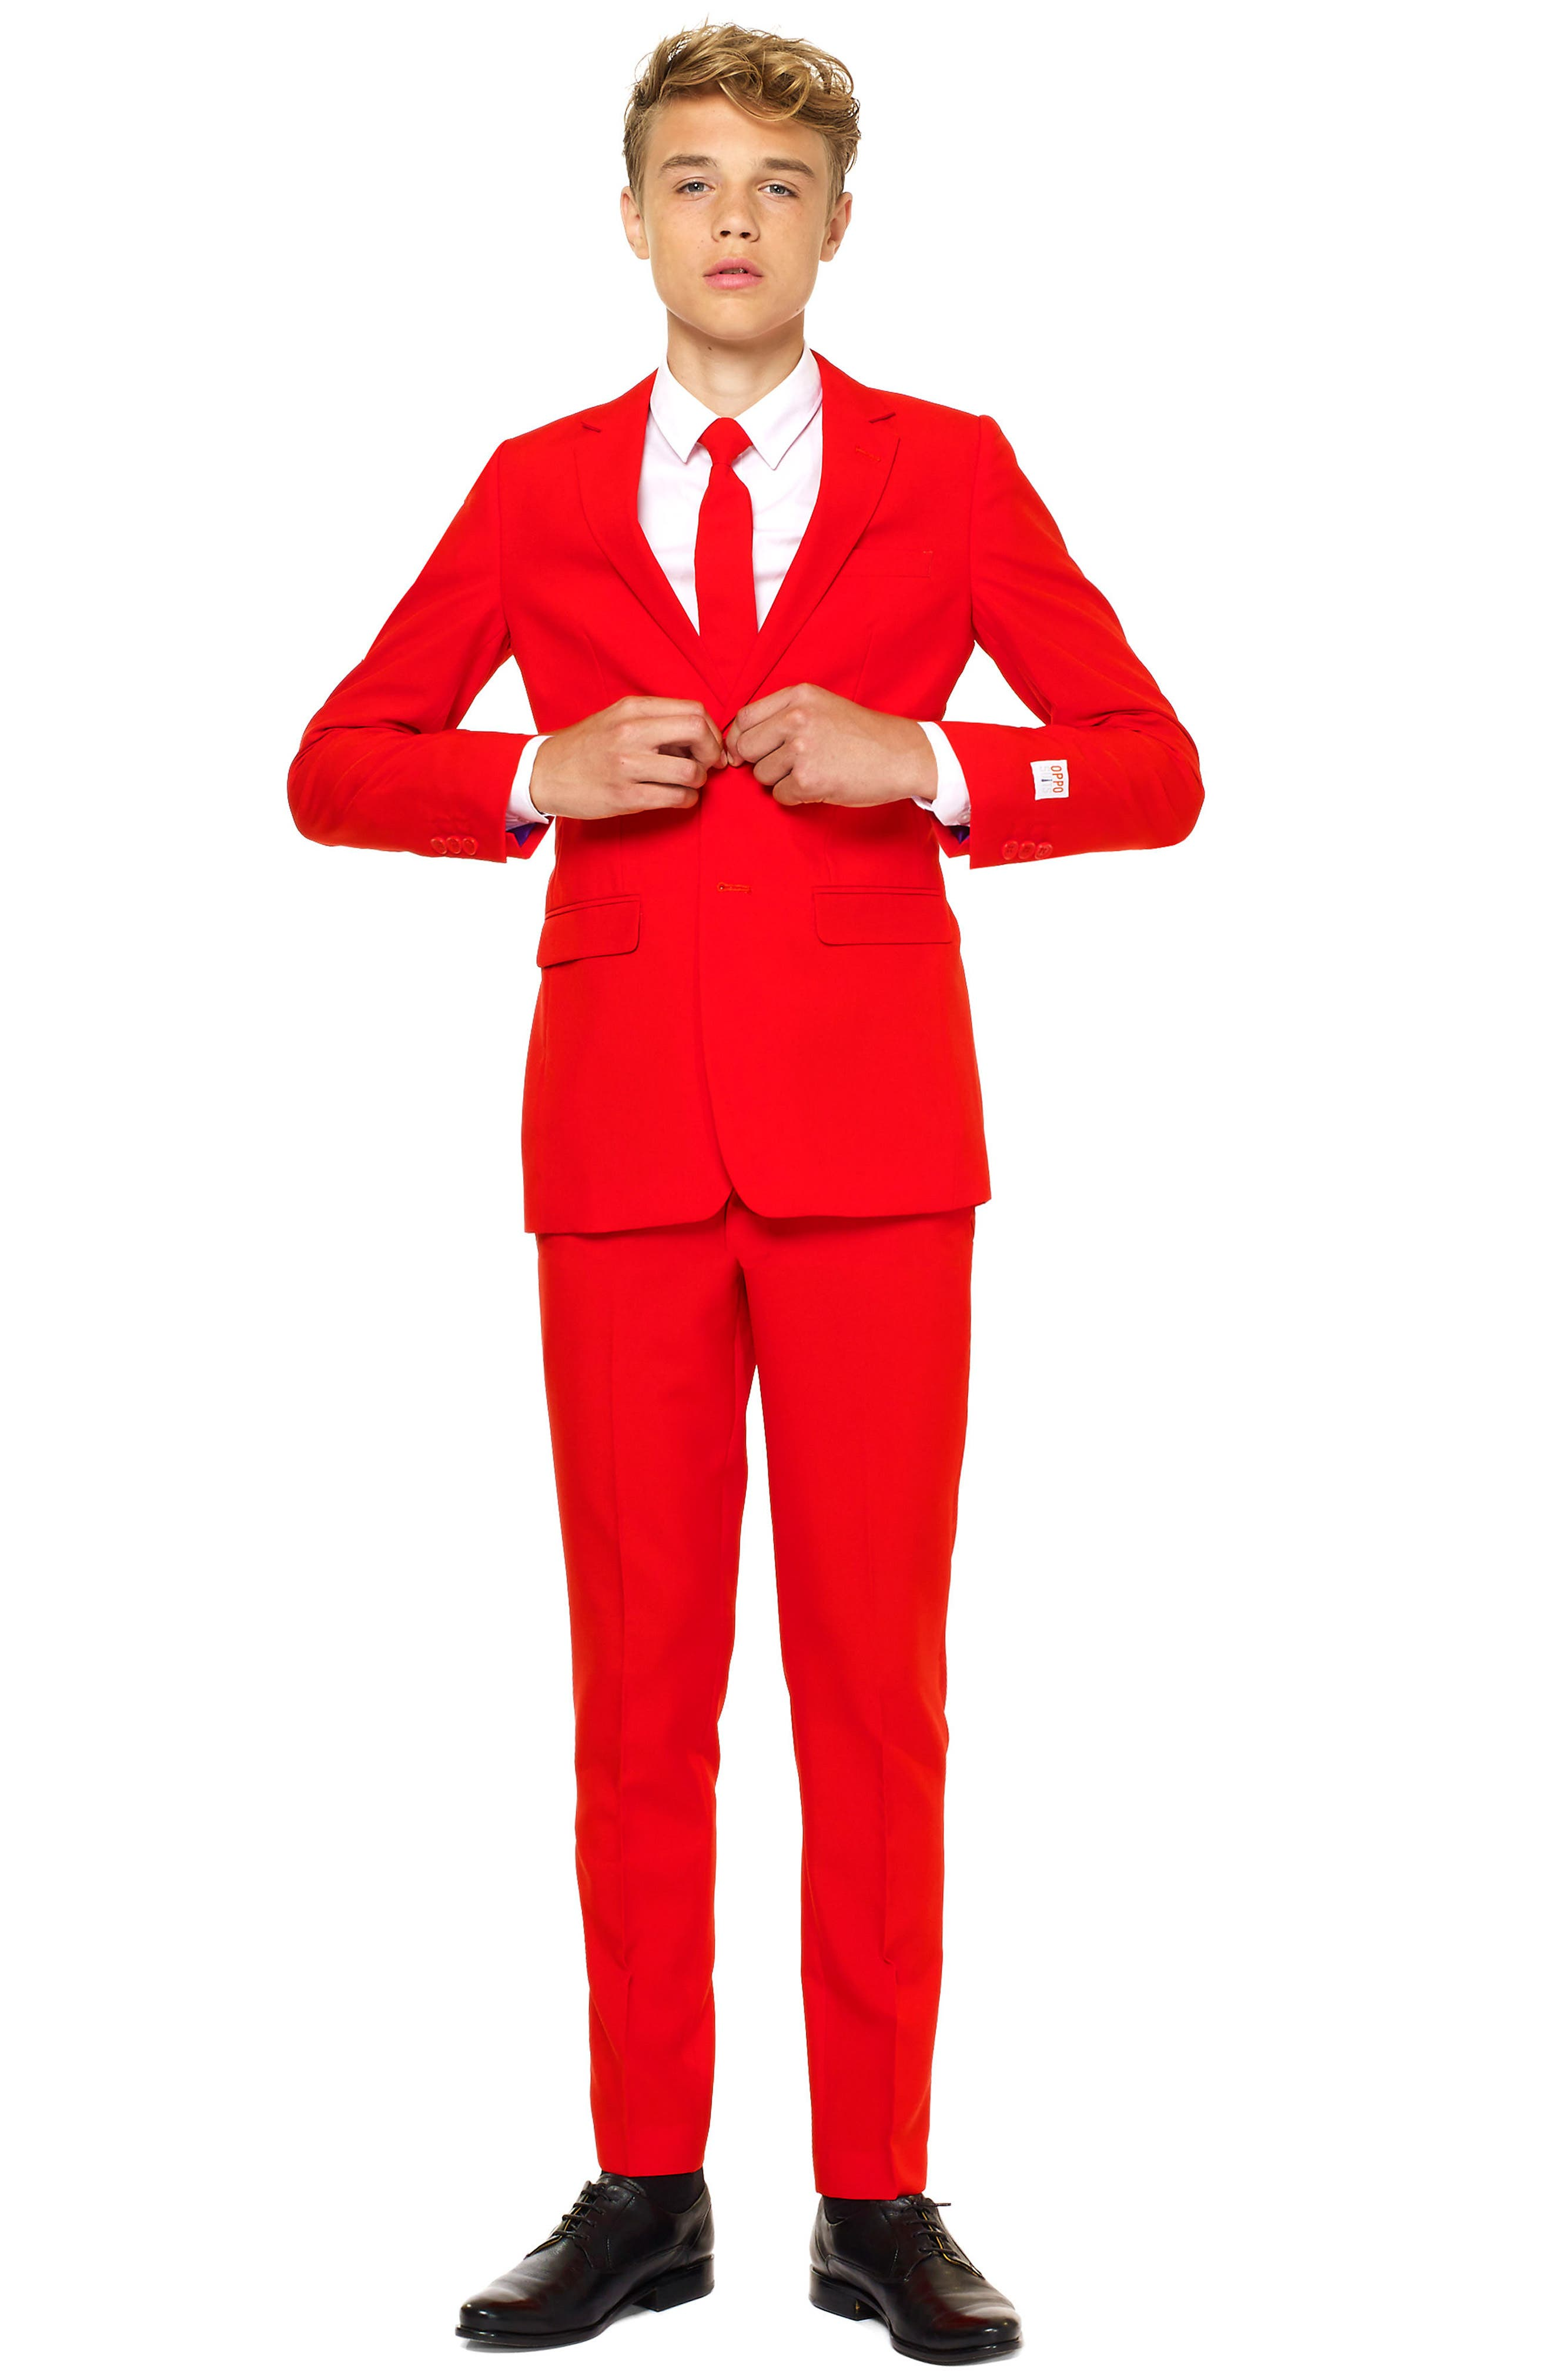 Oppo Red Devil Two-Piece Suit with Tie,                         Main,                         color, Red